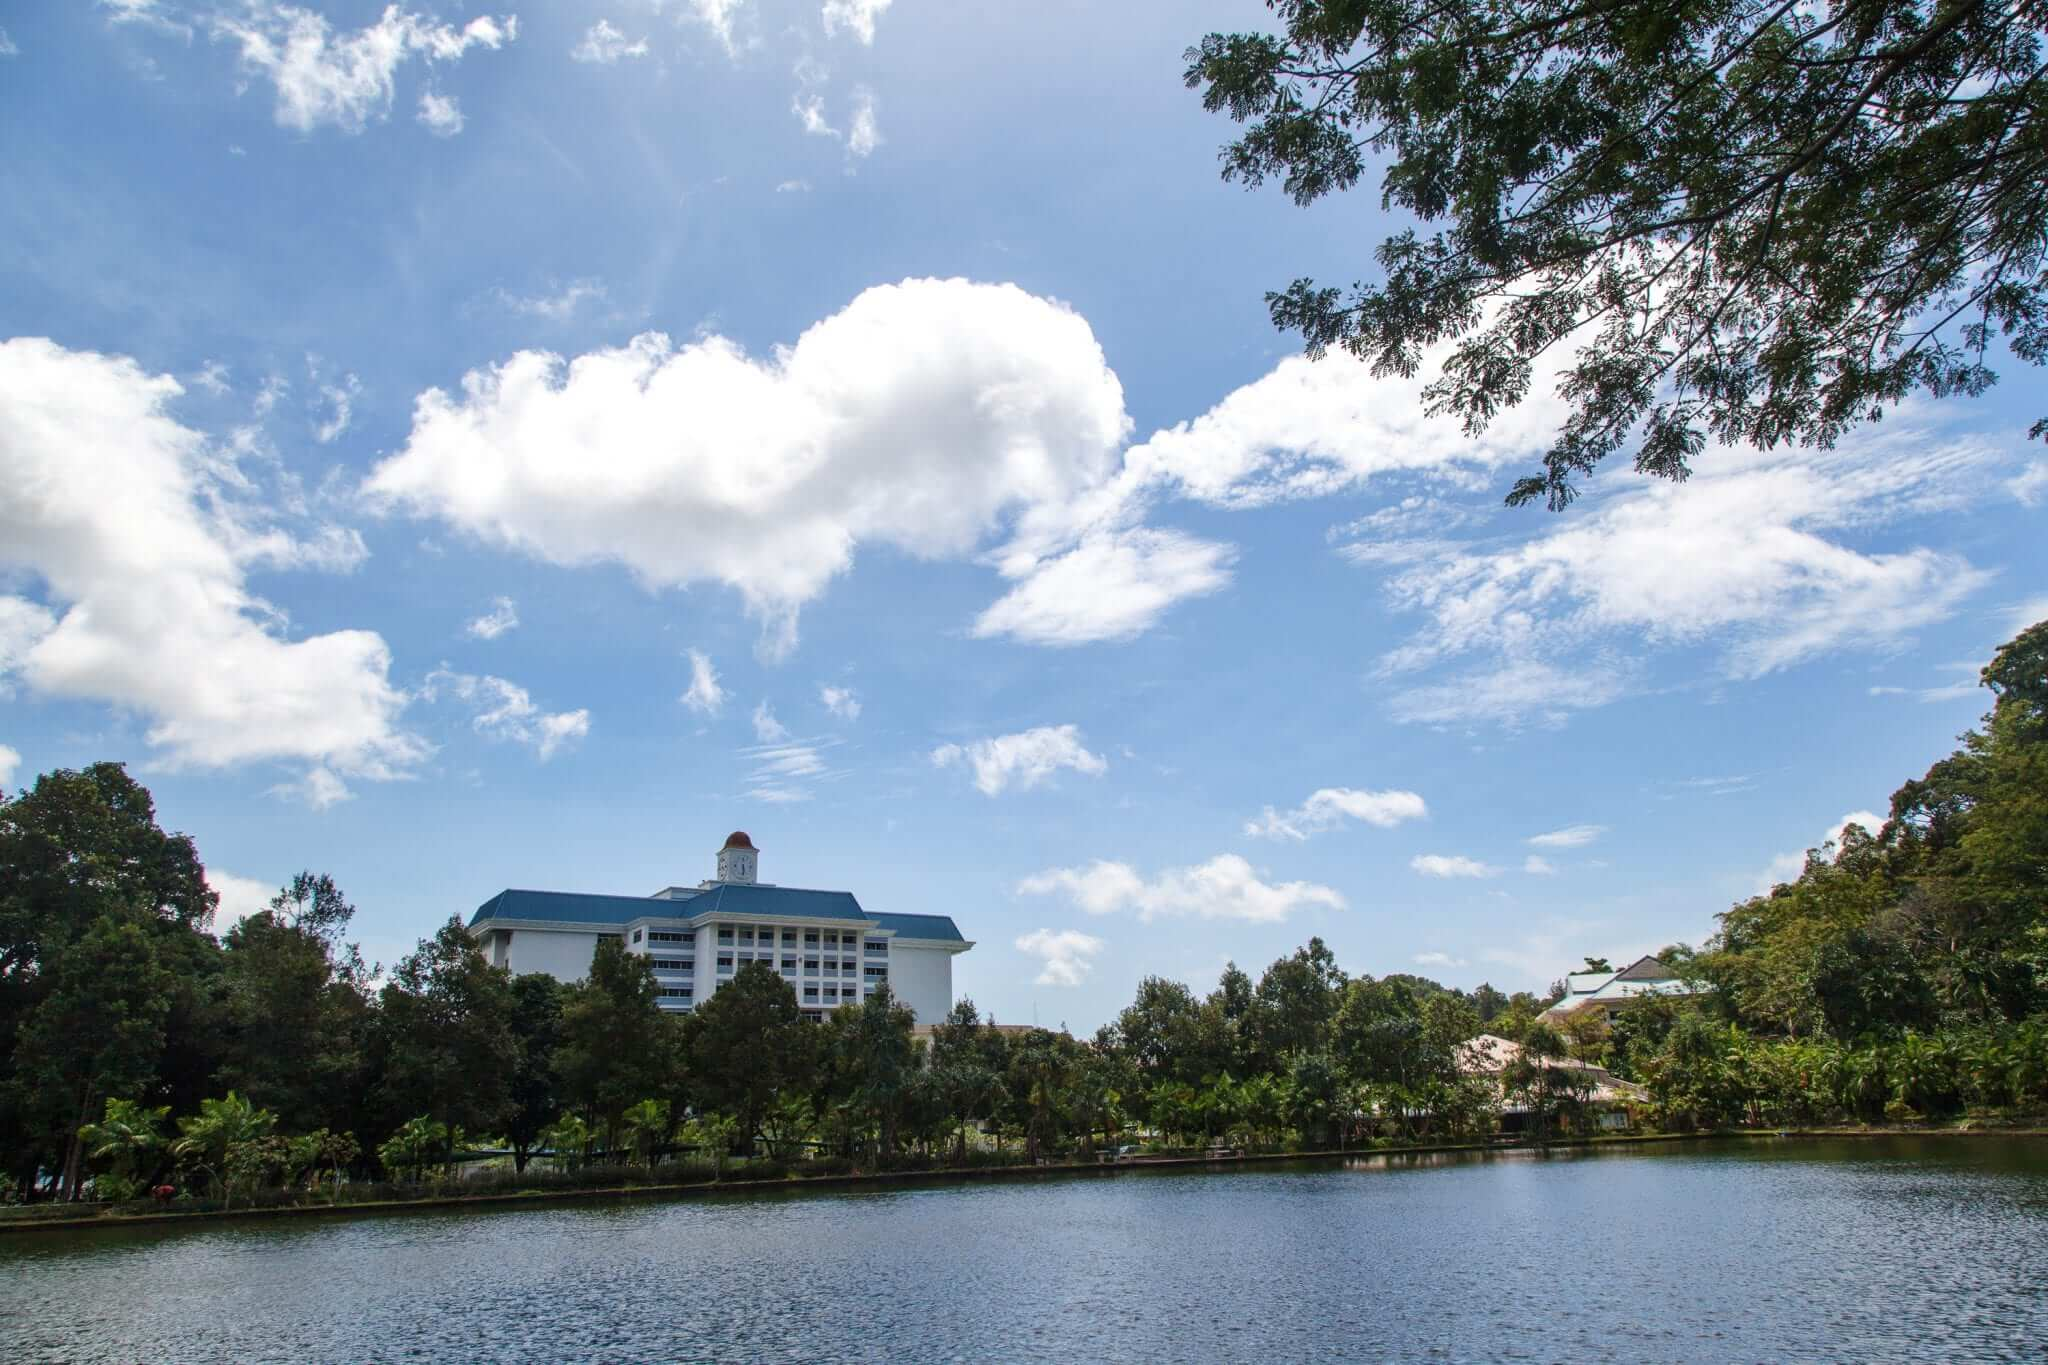 Study abroad in phuket, thailand - Prince of songkla university Lake view